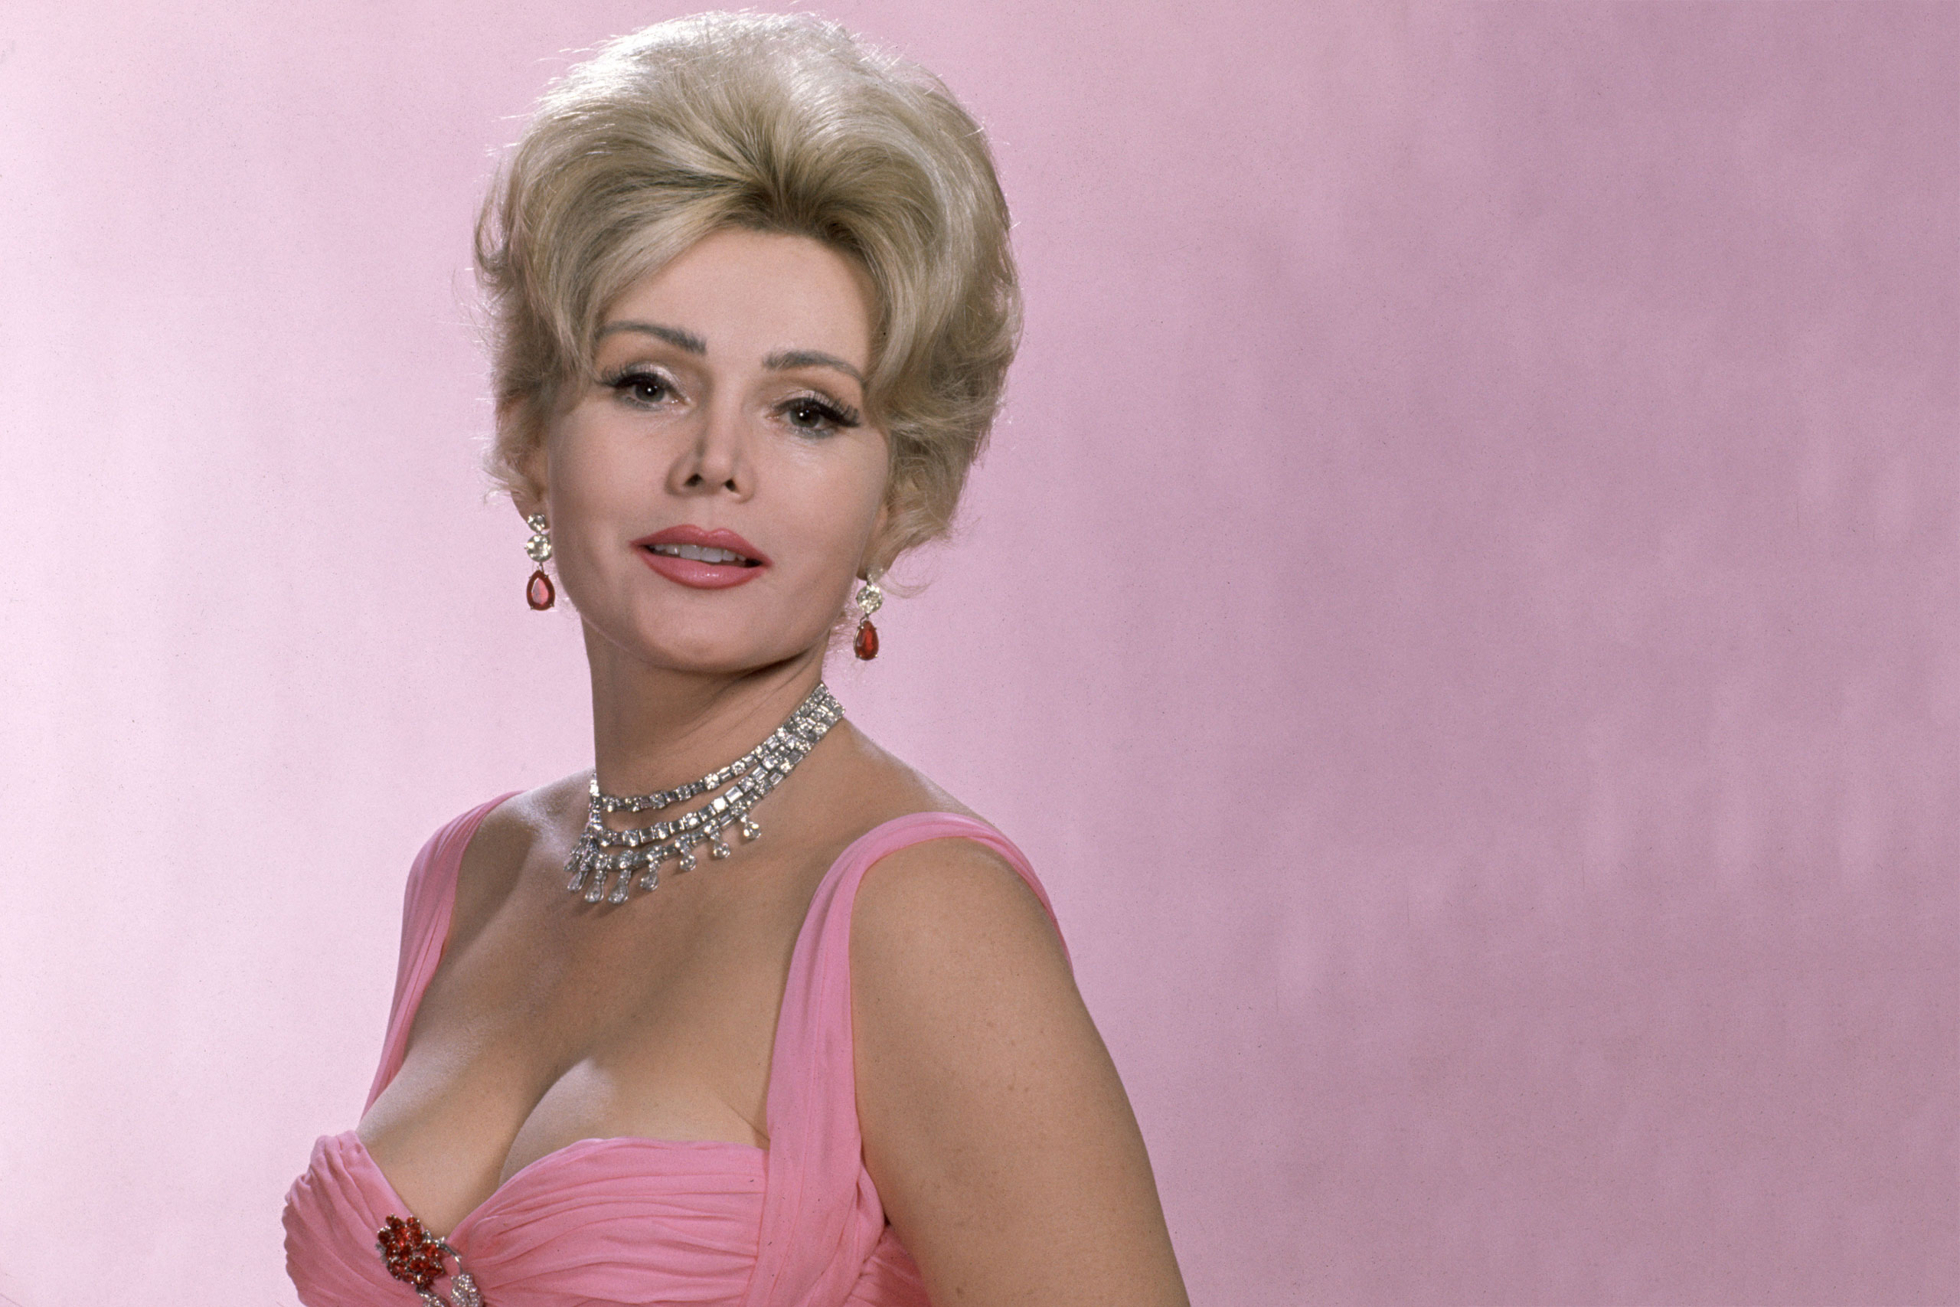 Voodoo sex and a 1950s gold watch – the missing link between Marlon Brando and Zsa Zsa Gabor